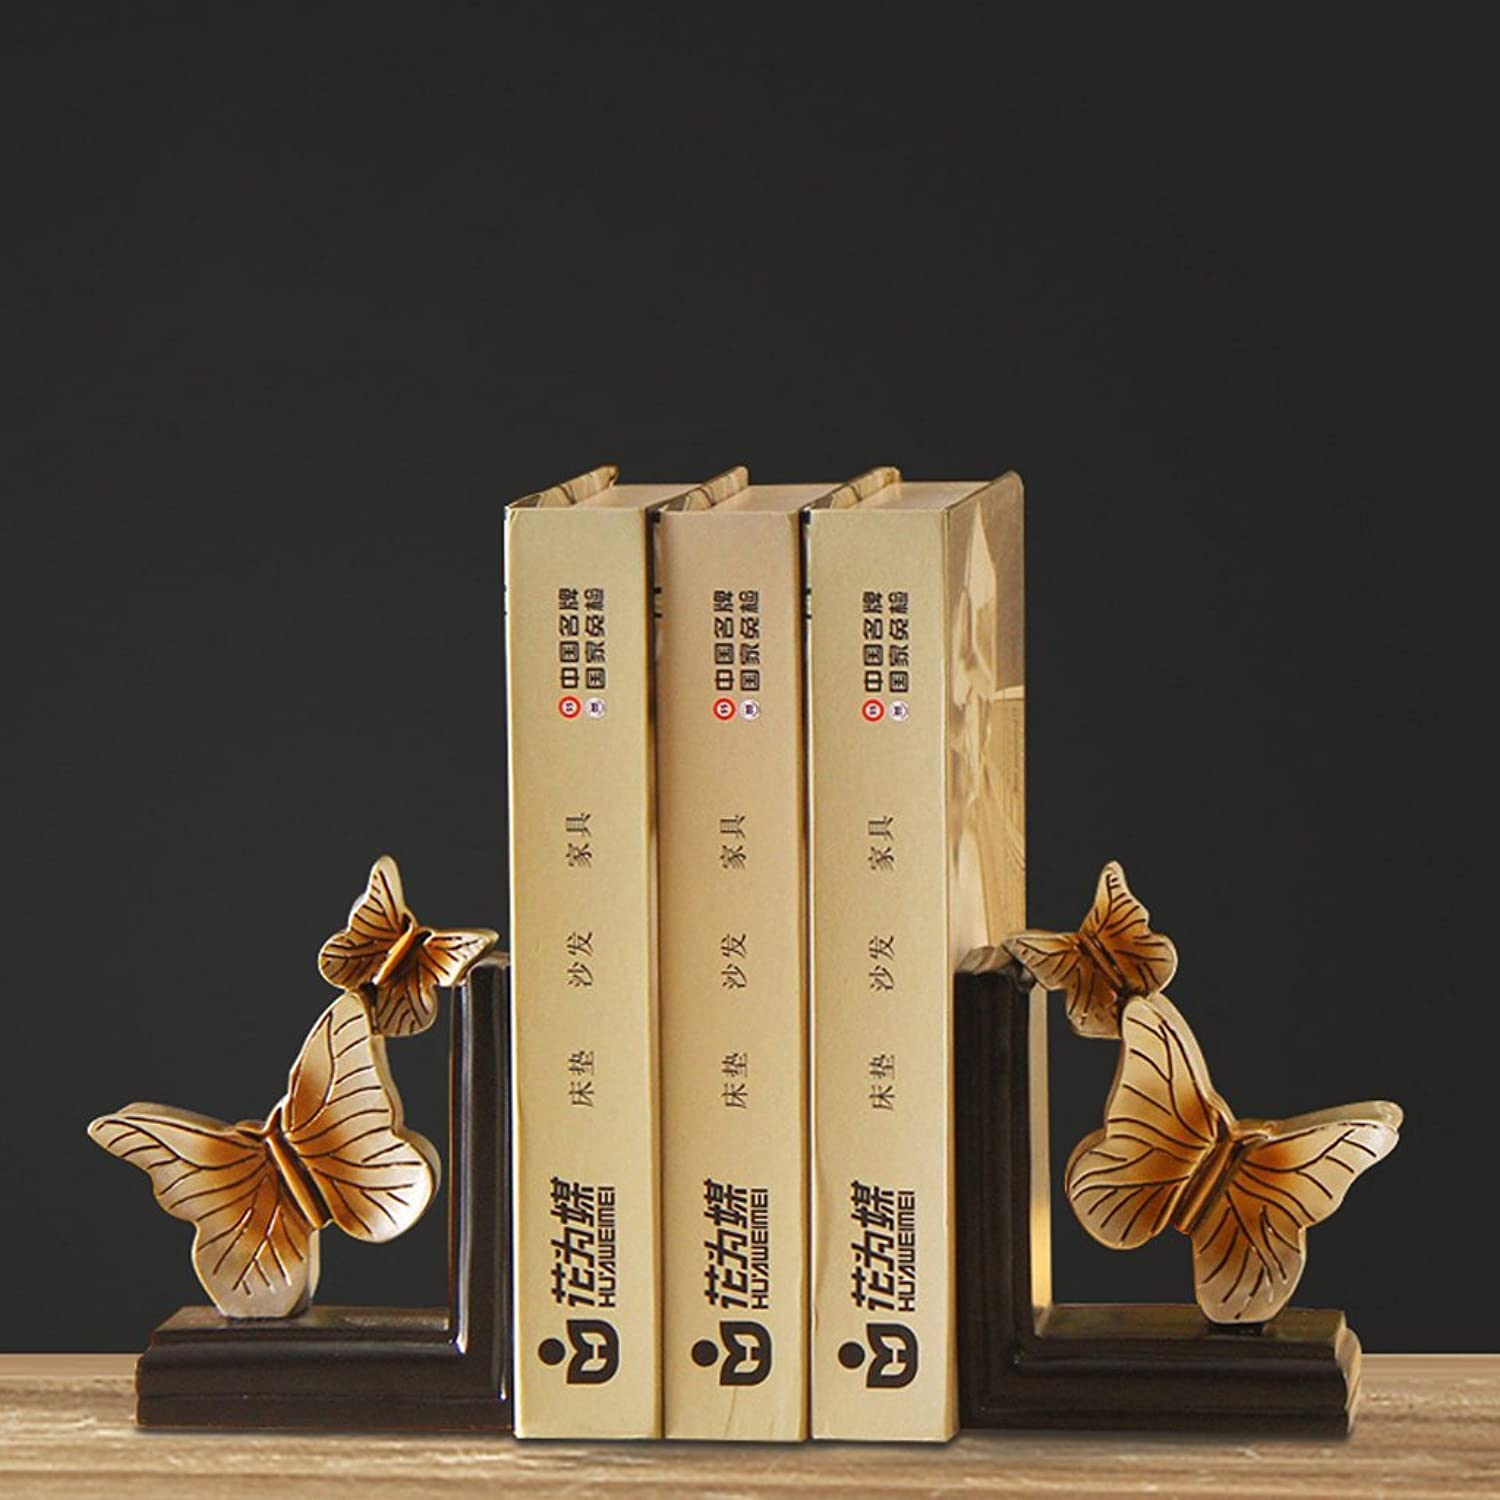 Resin butterfly bookshelf Home Decoration Wine cabinet decorations indoor living room coffee table TV cabinet office desk Wedding Gifts